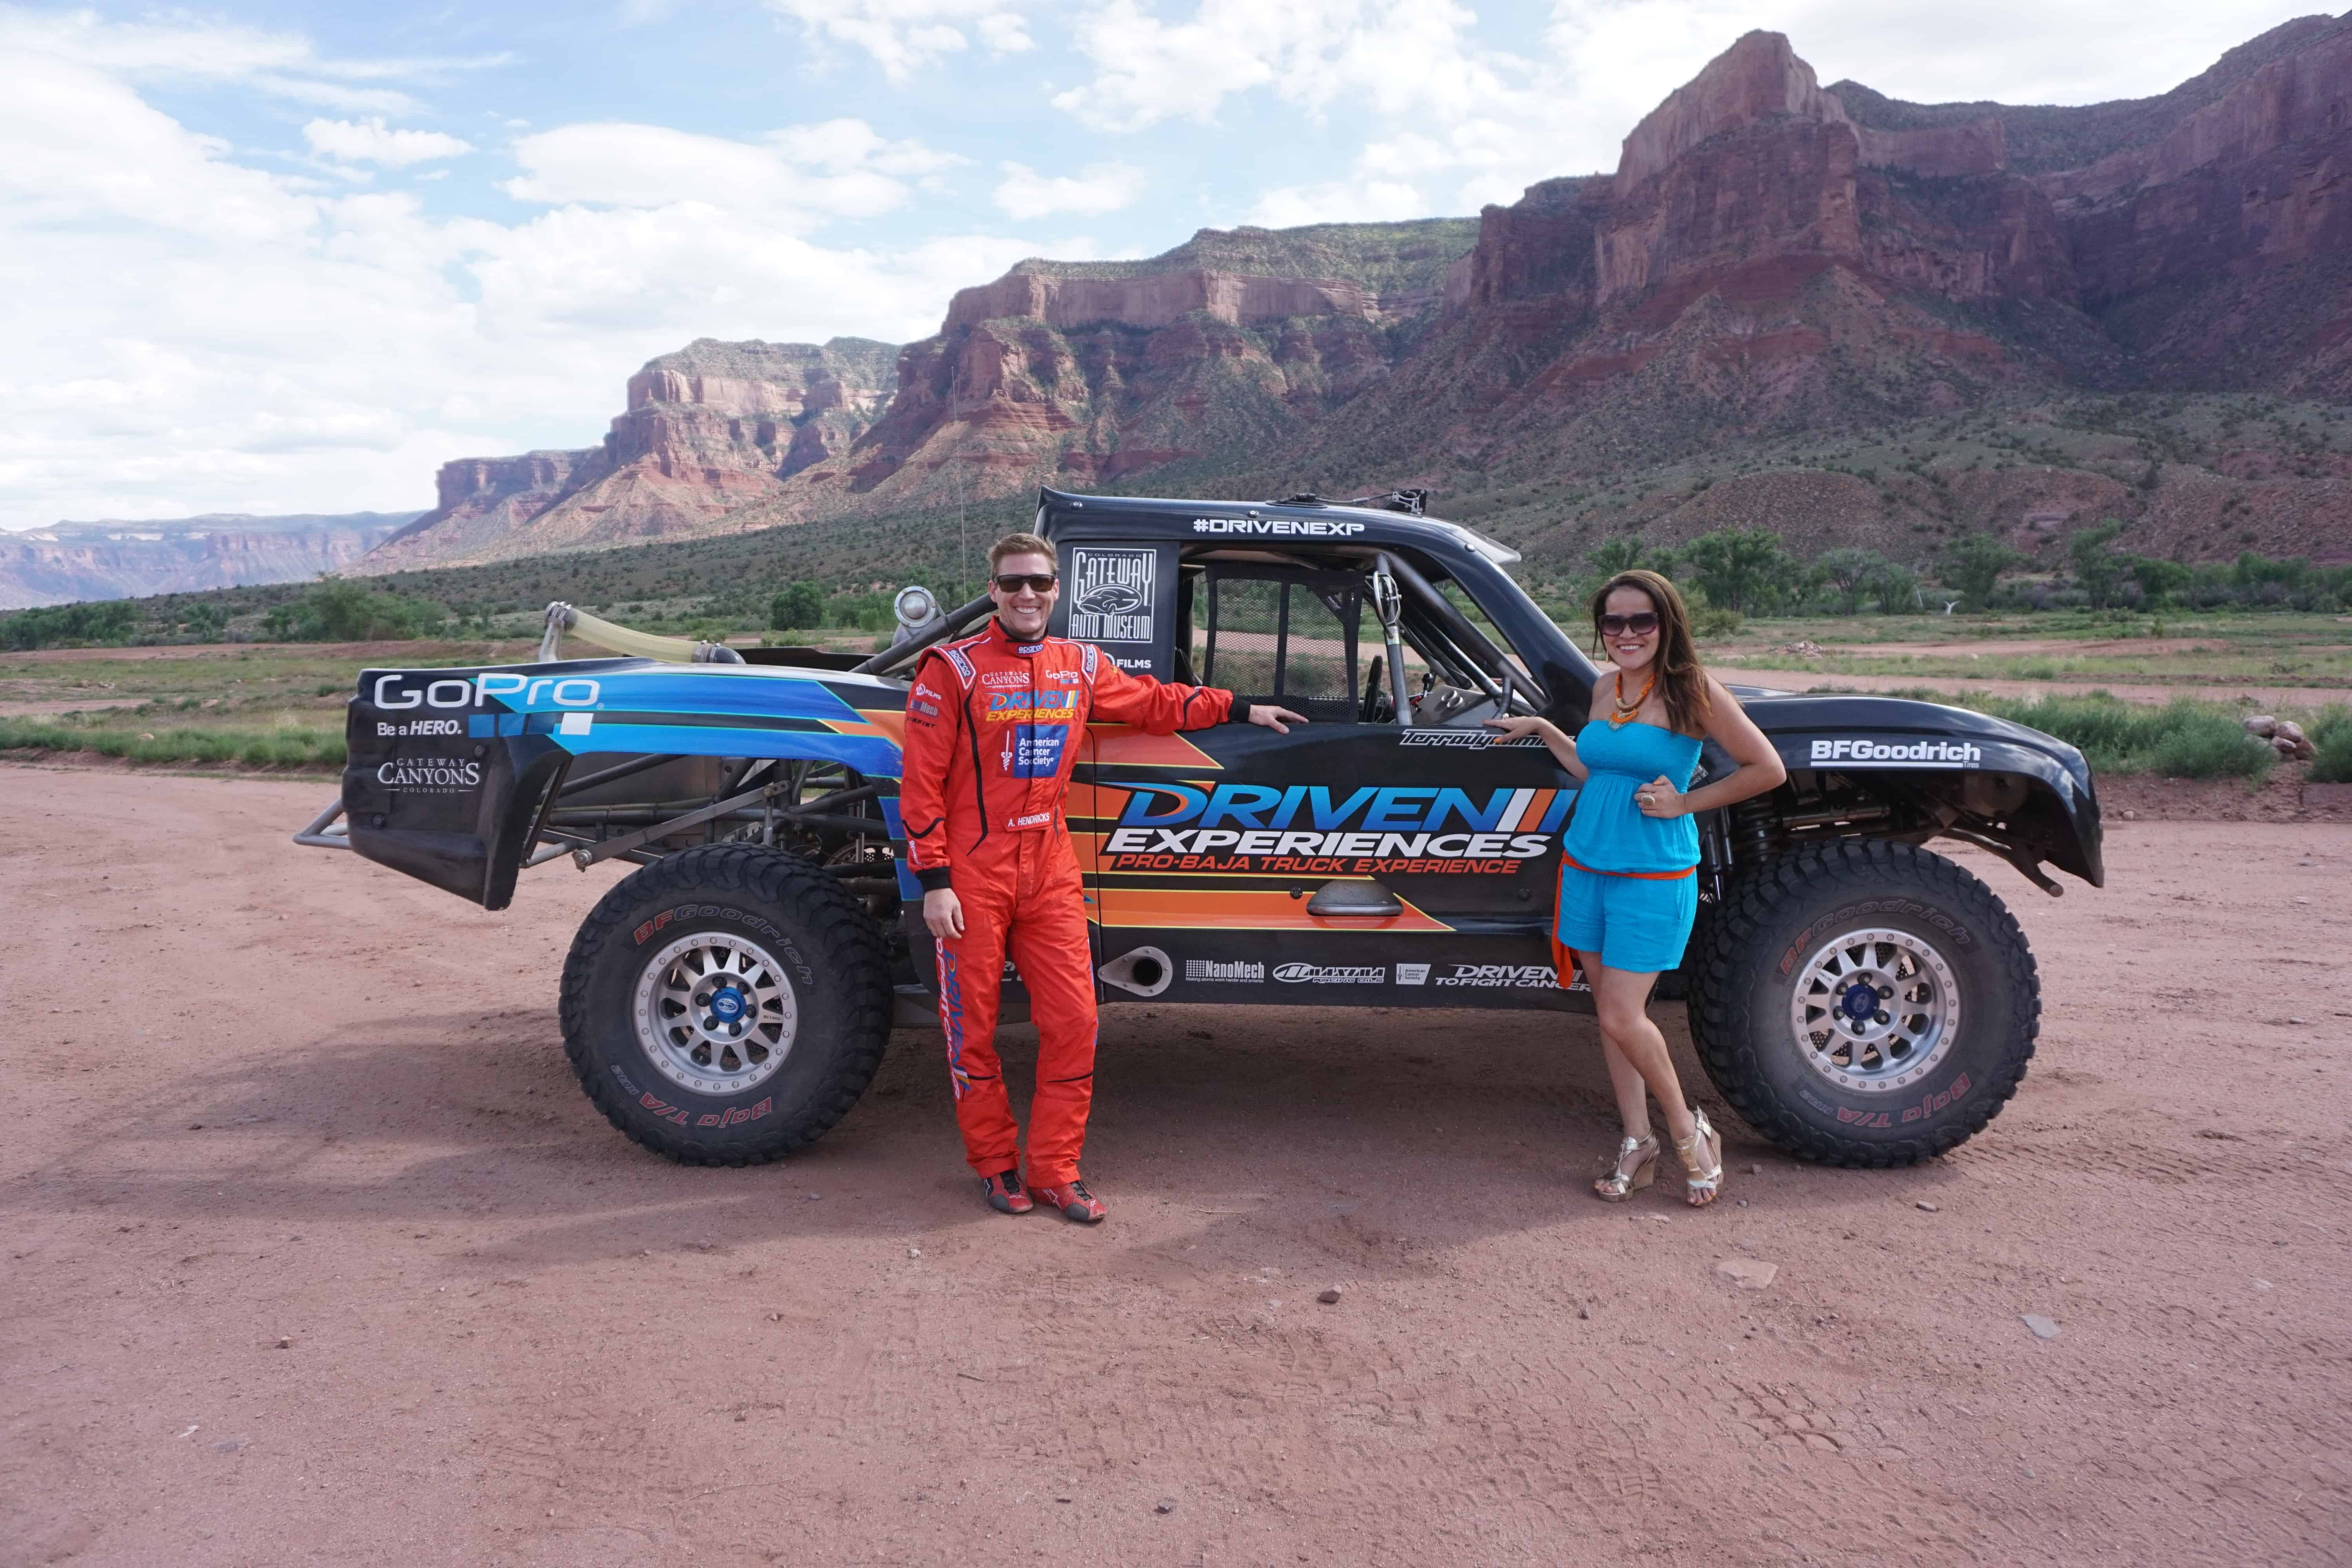 Dreams in Heels Exploring the Canyons of Colorado in a Baja Trophy Truck with Driven Experiences!